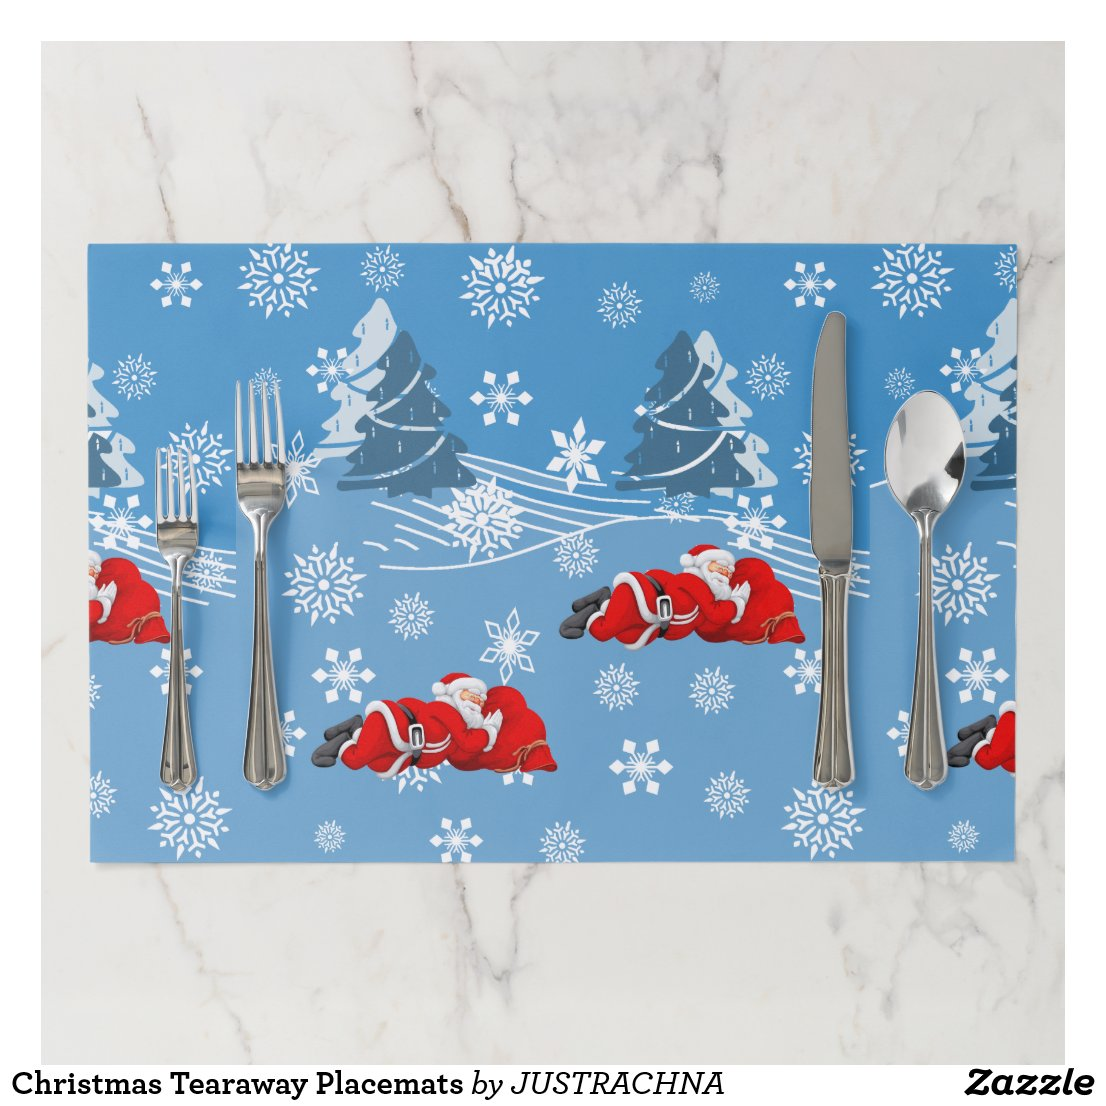 Christmas Tearaway Placemats